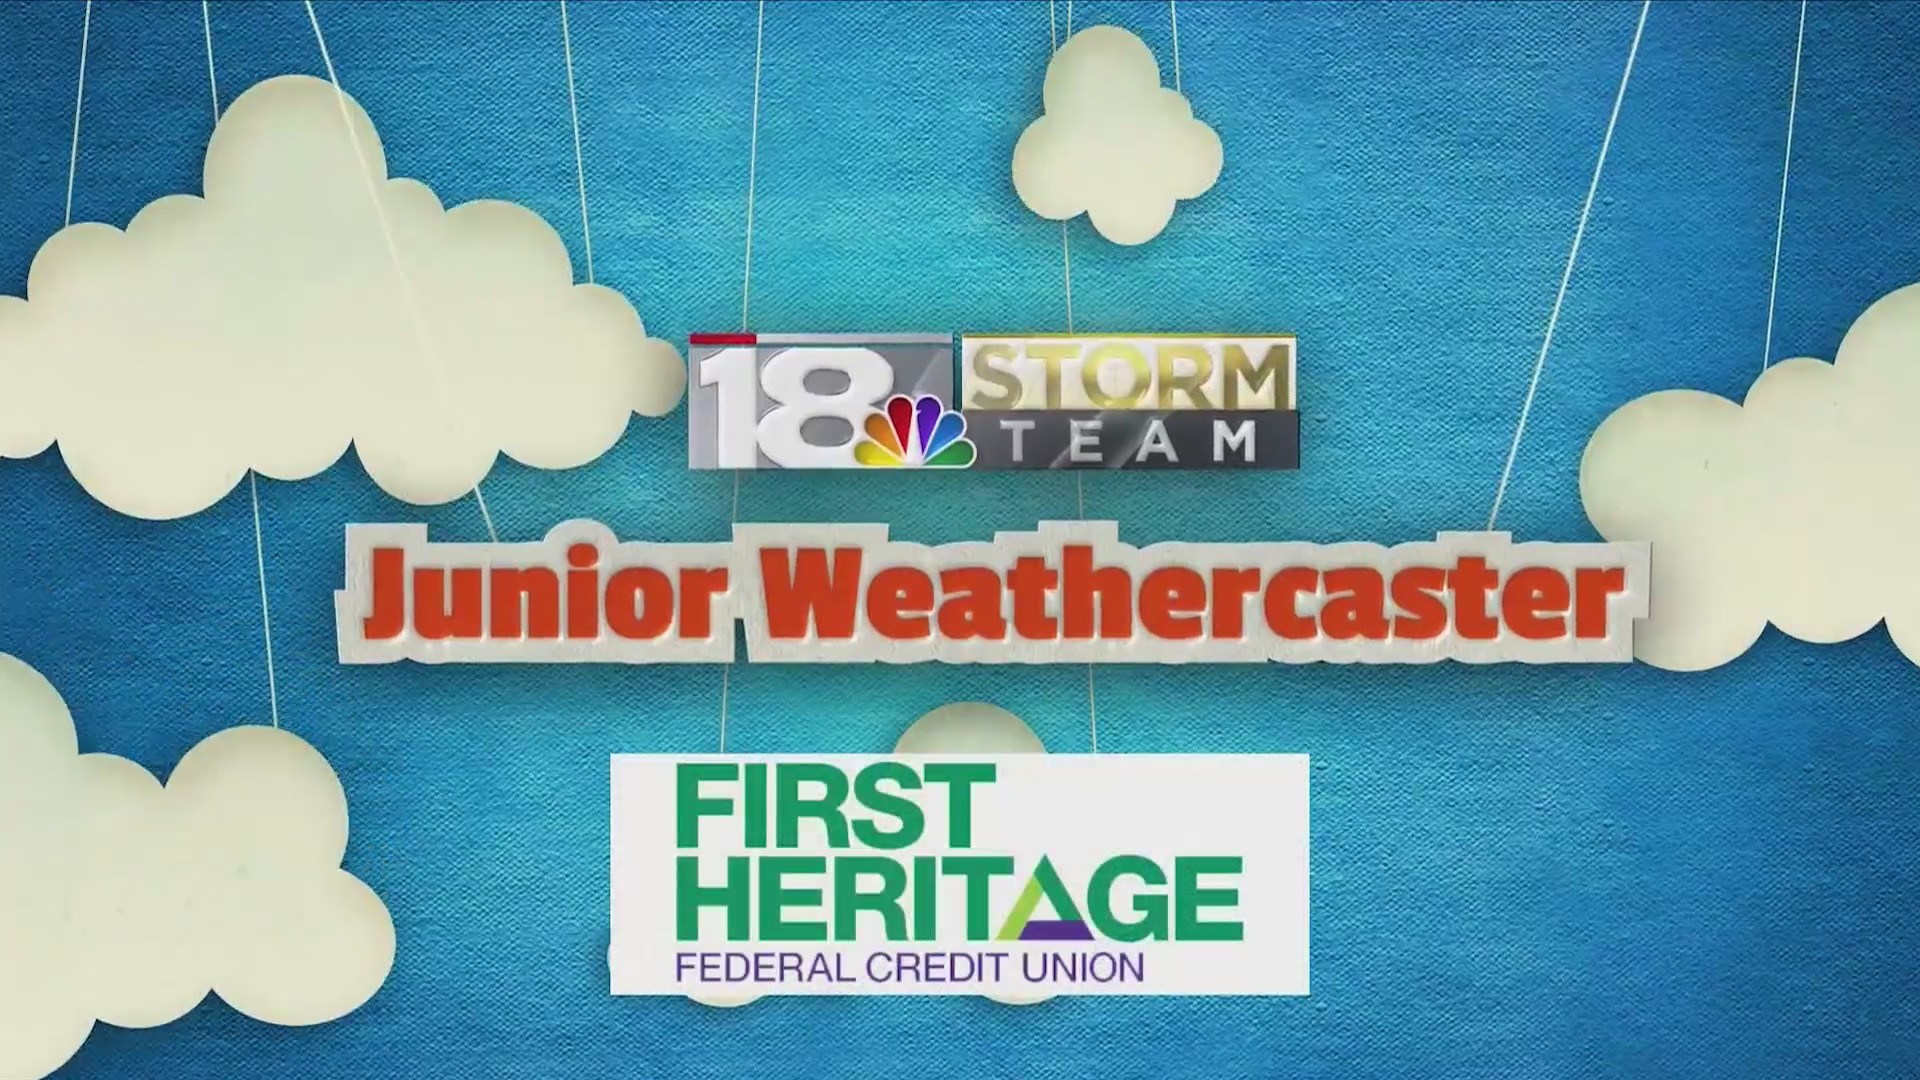 June's Junior Weathercaster